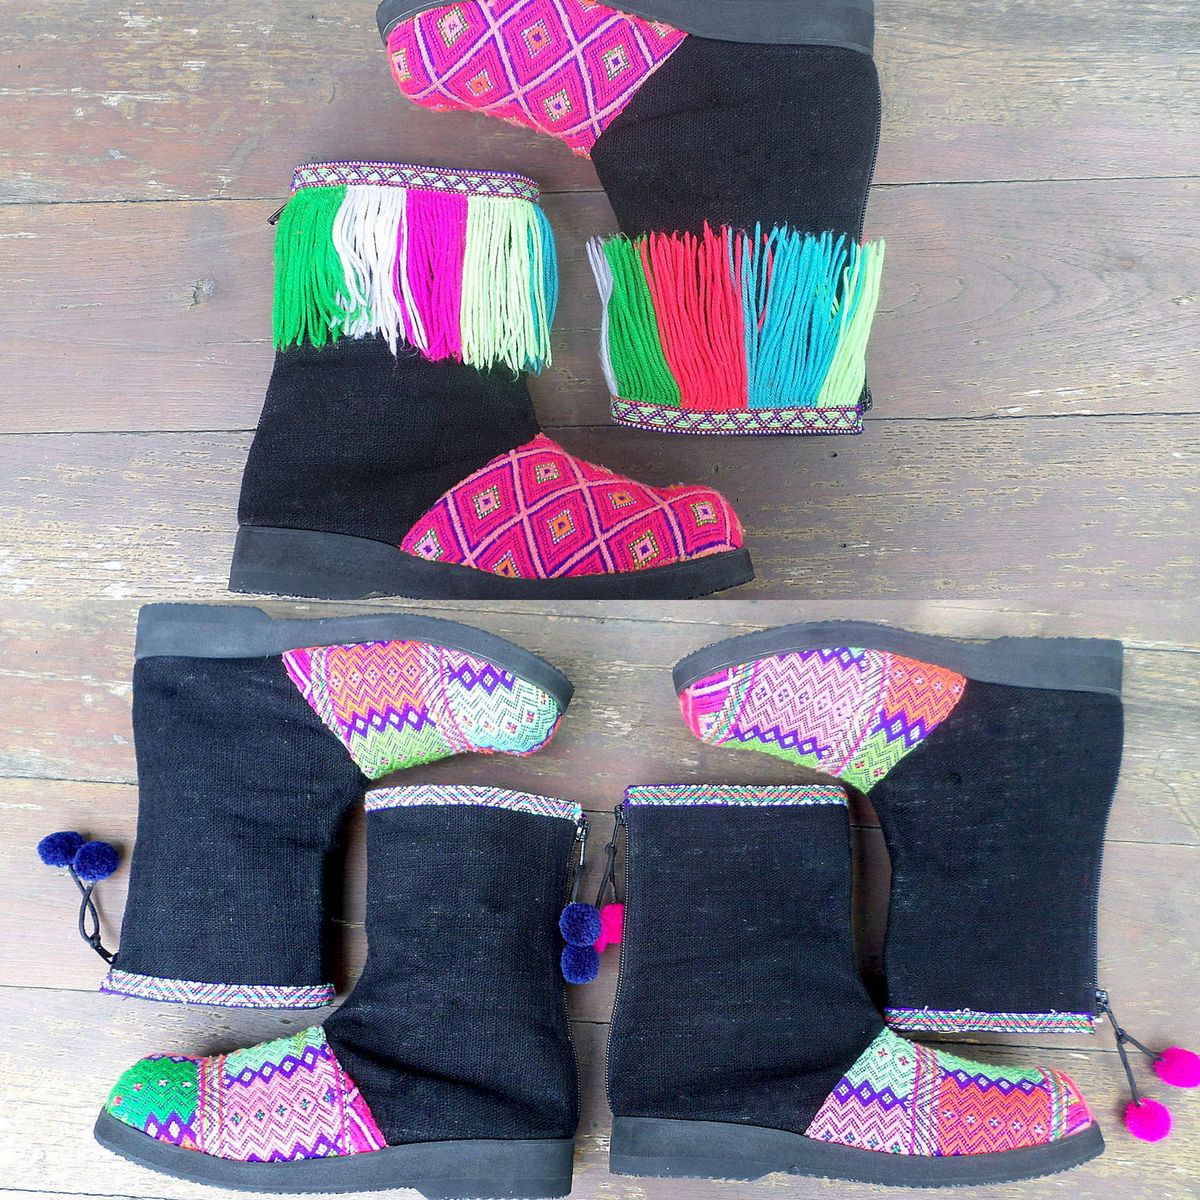 Kala Funky Womens Short Boot In Rich Tribal Colors Accented With Fringe Or Pom Poms - product images  of